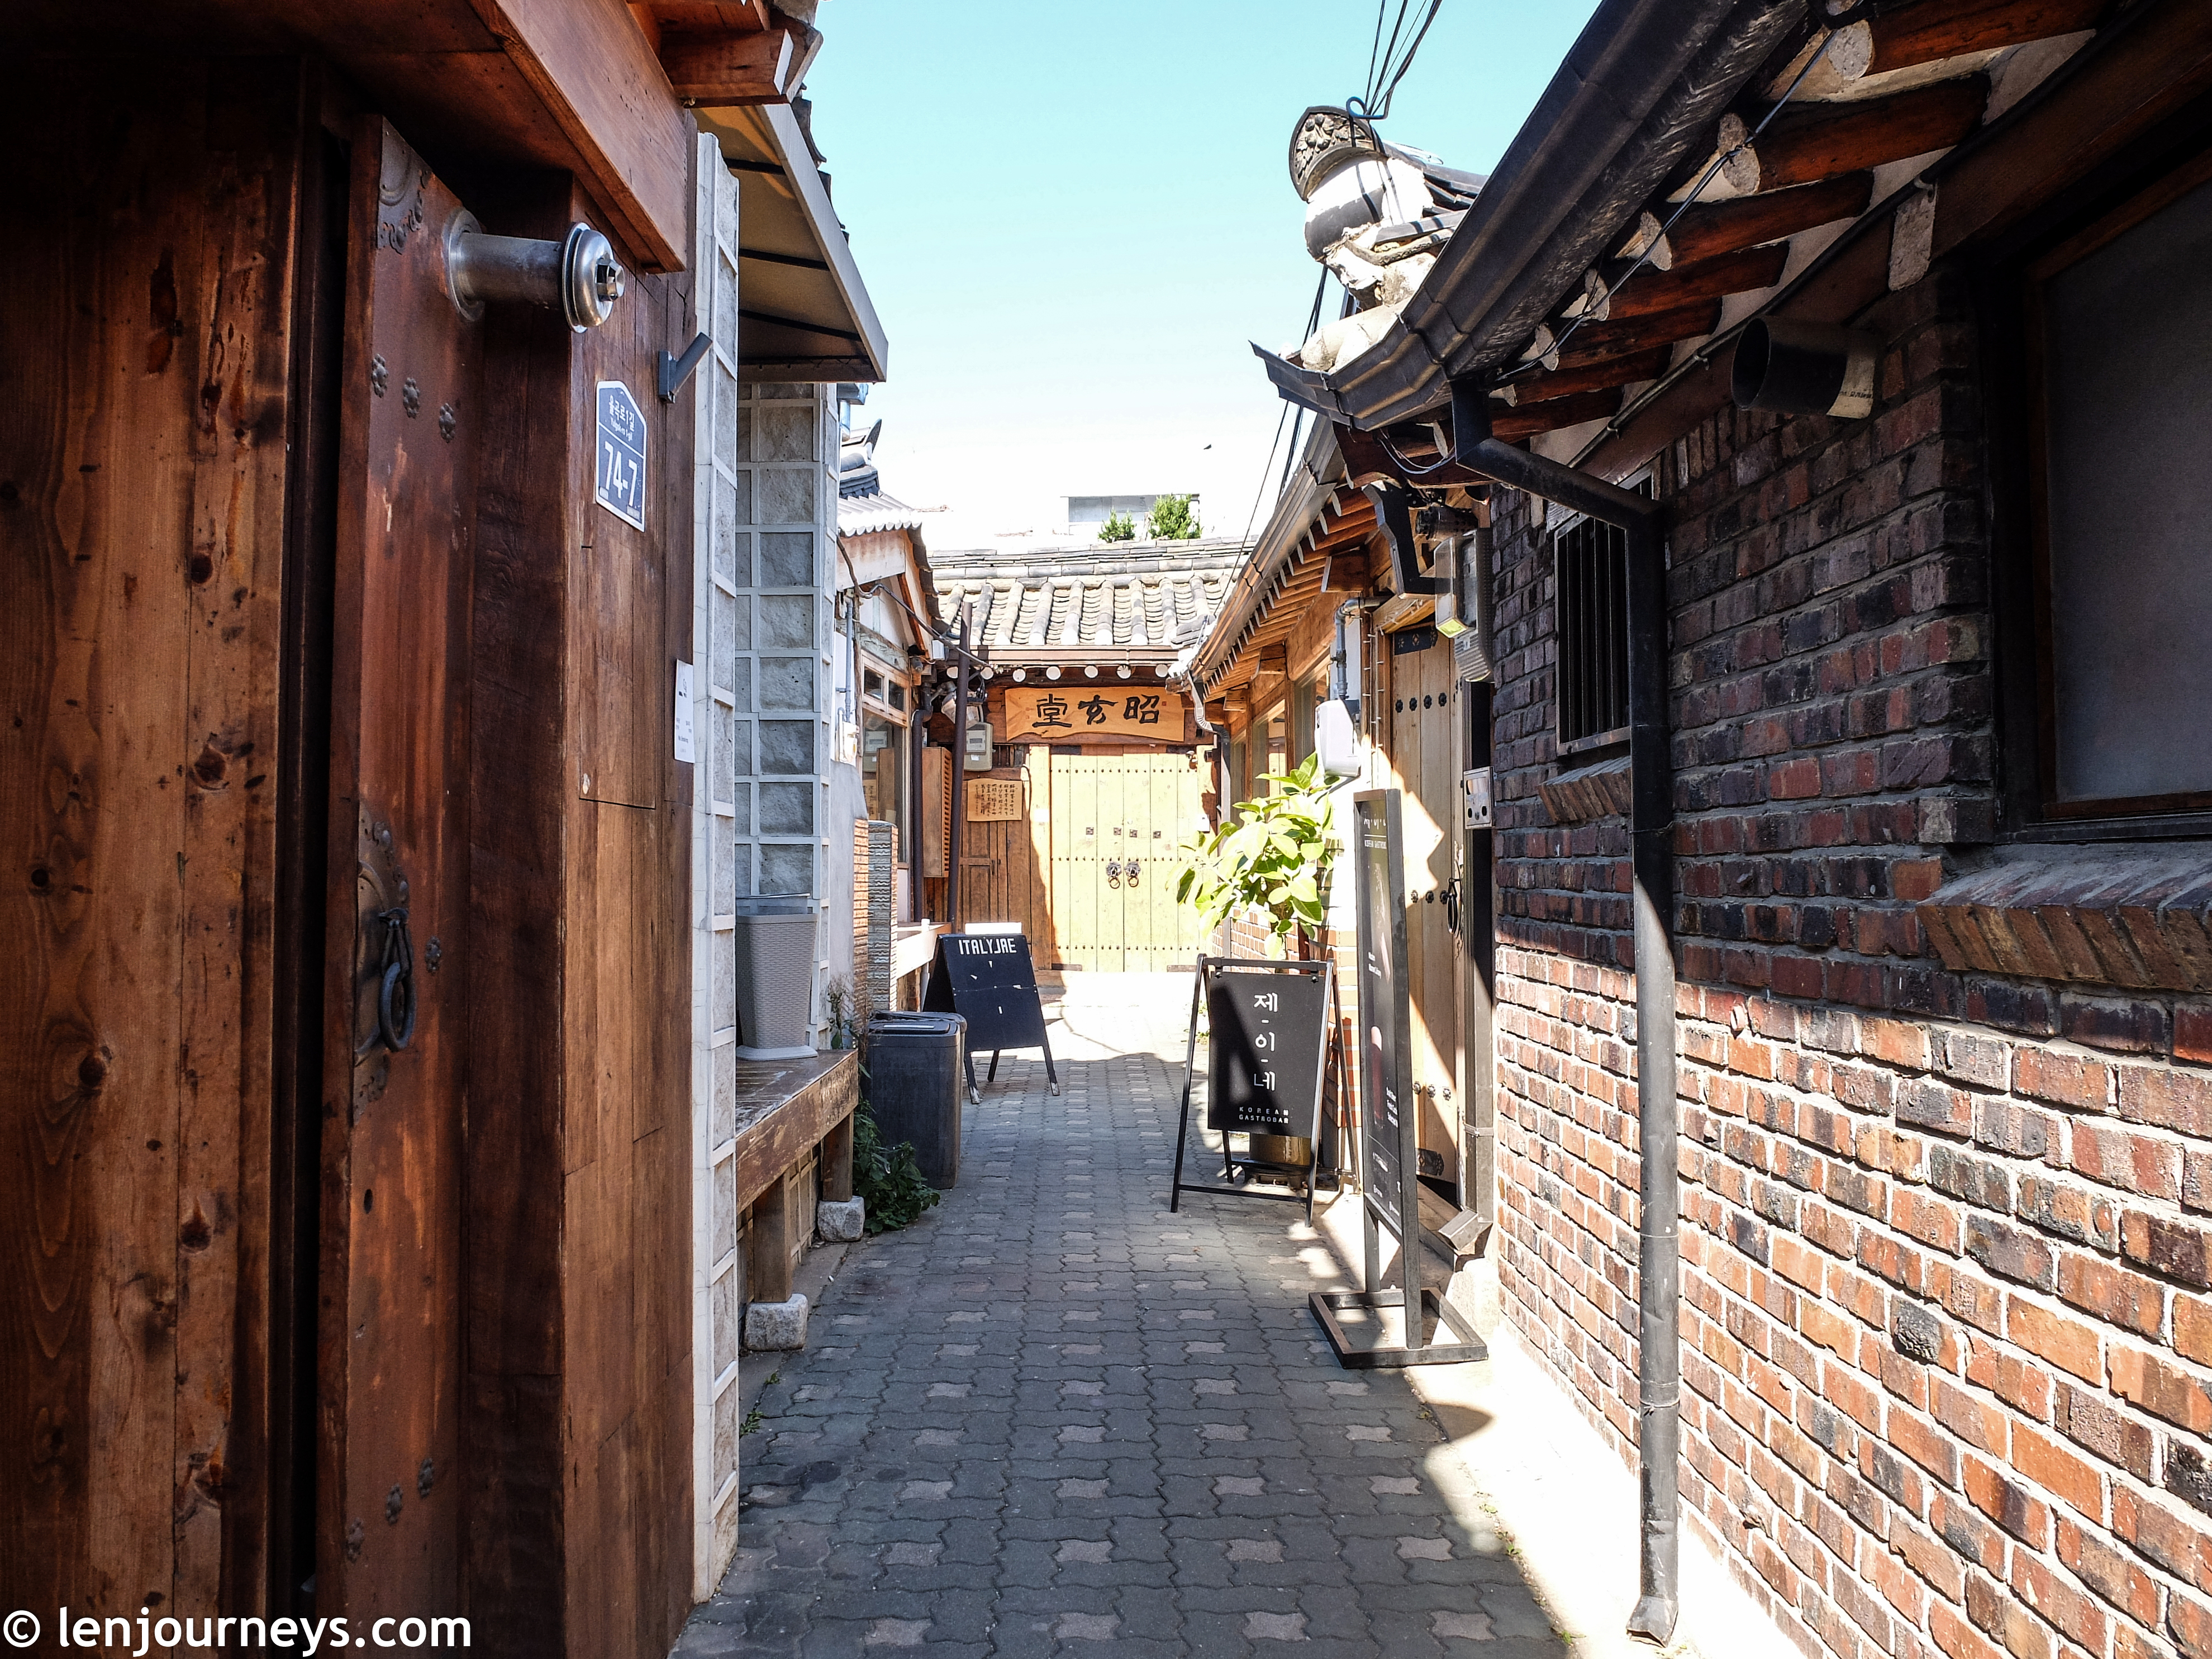 Narrow lanes in Bukchon Hanok Village